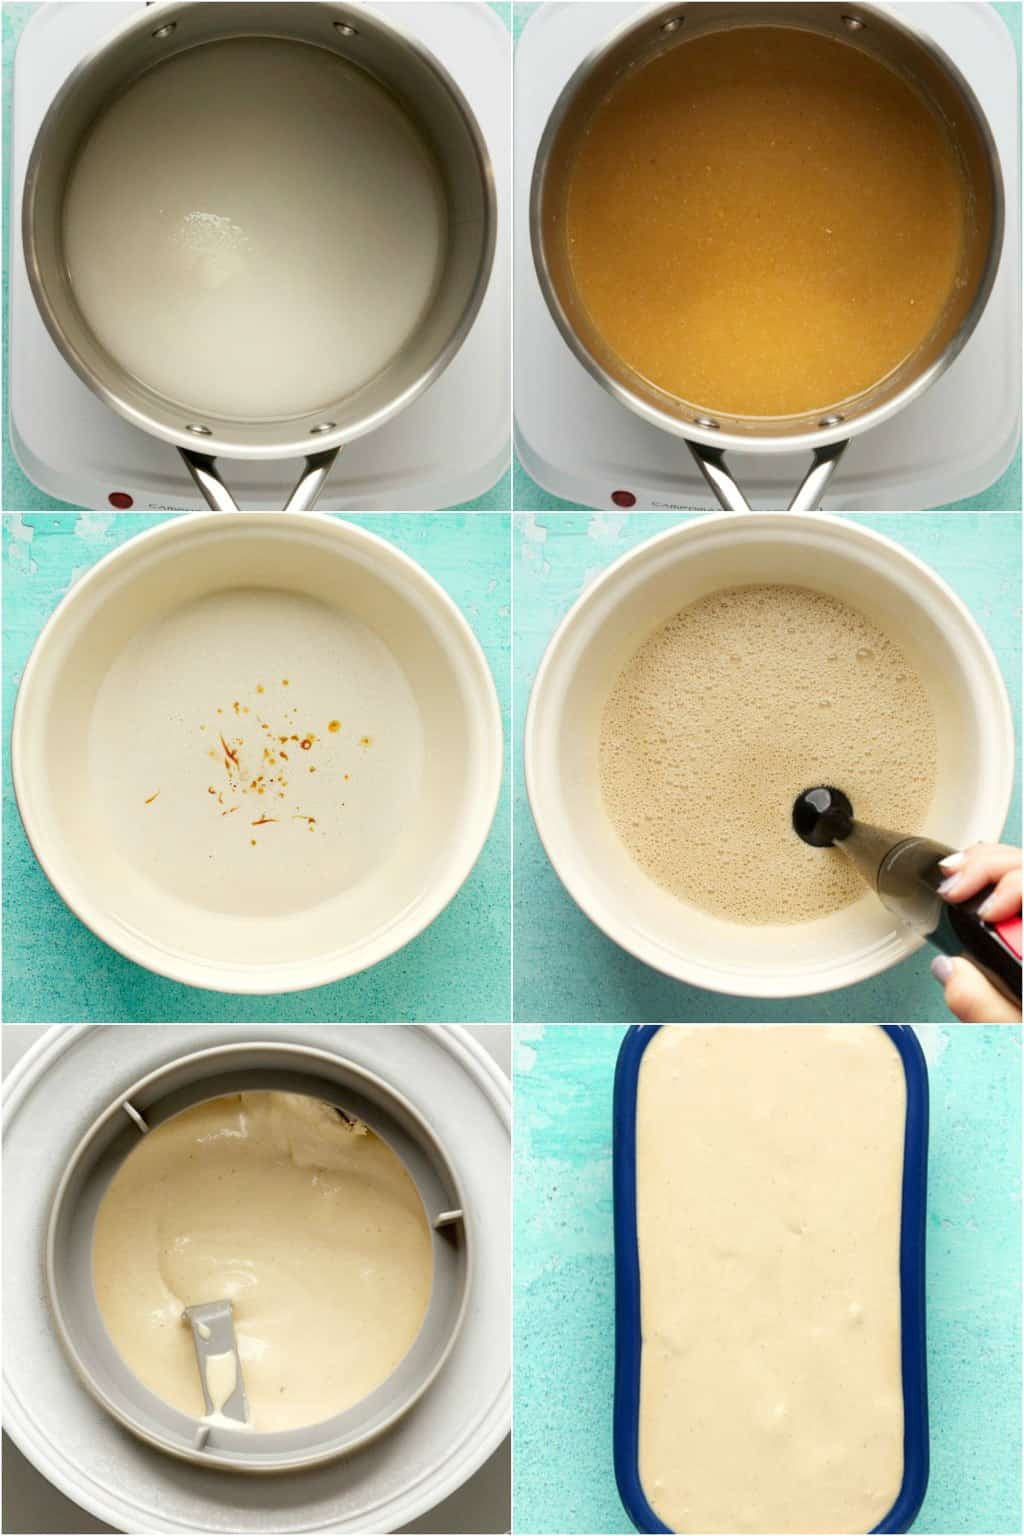 Step by step process photo collage of making cashew ice cream.